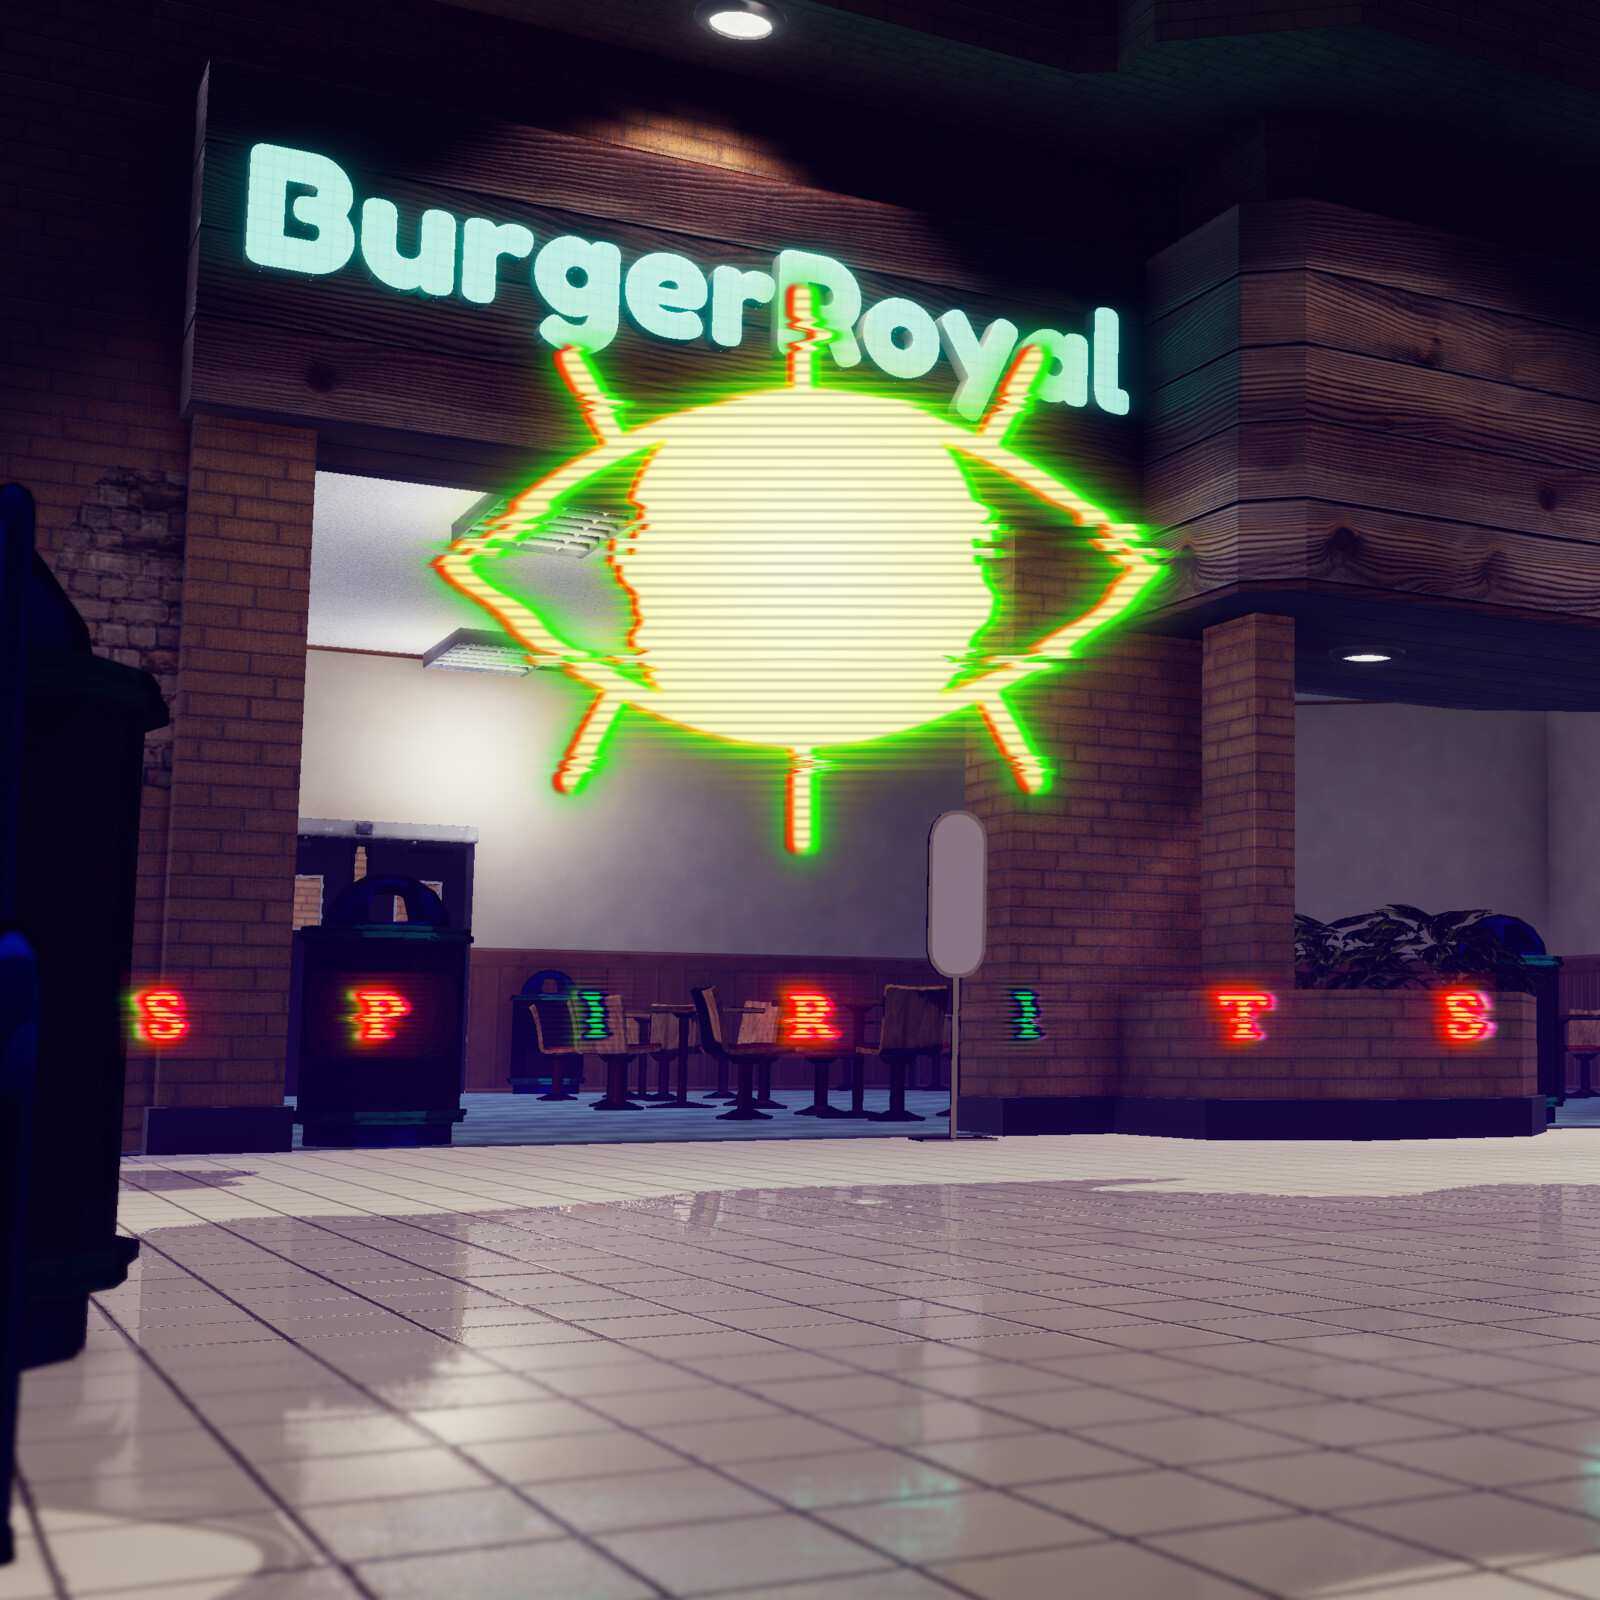 Spirits: Burger Royal